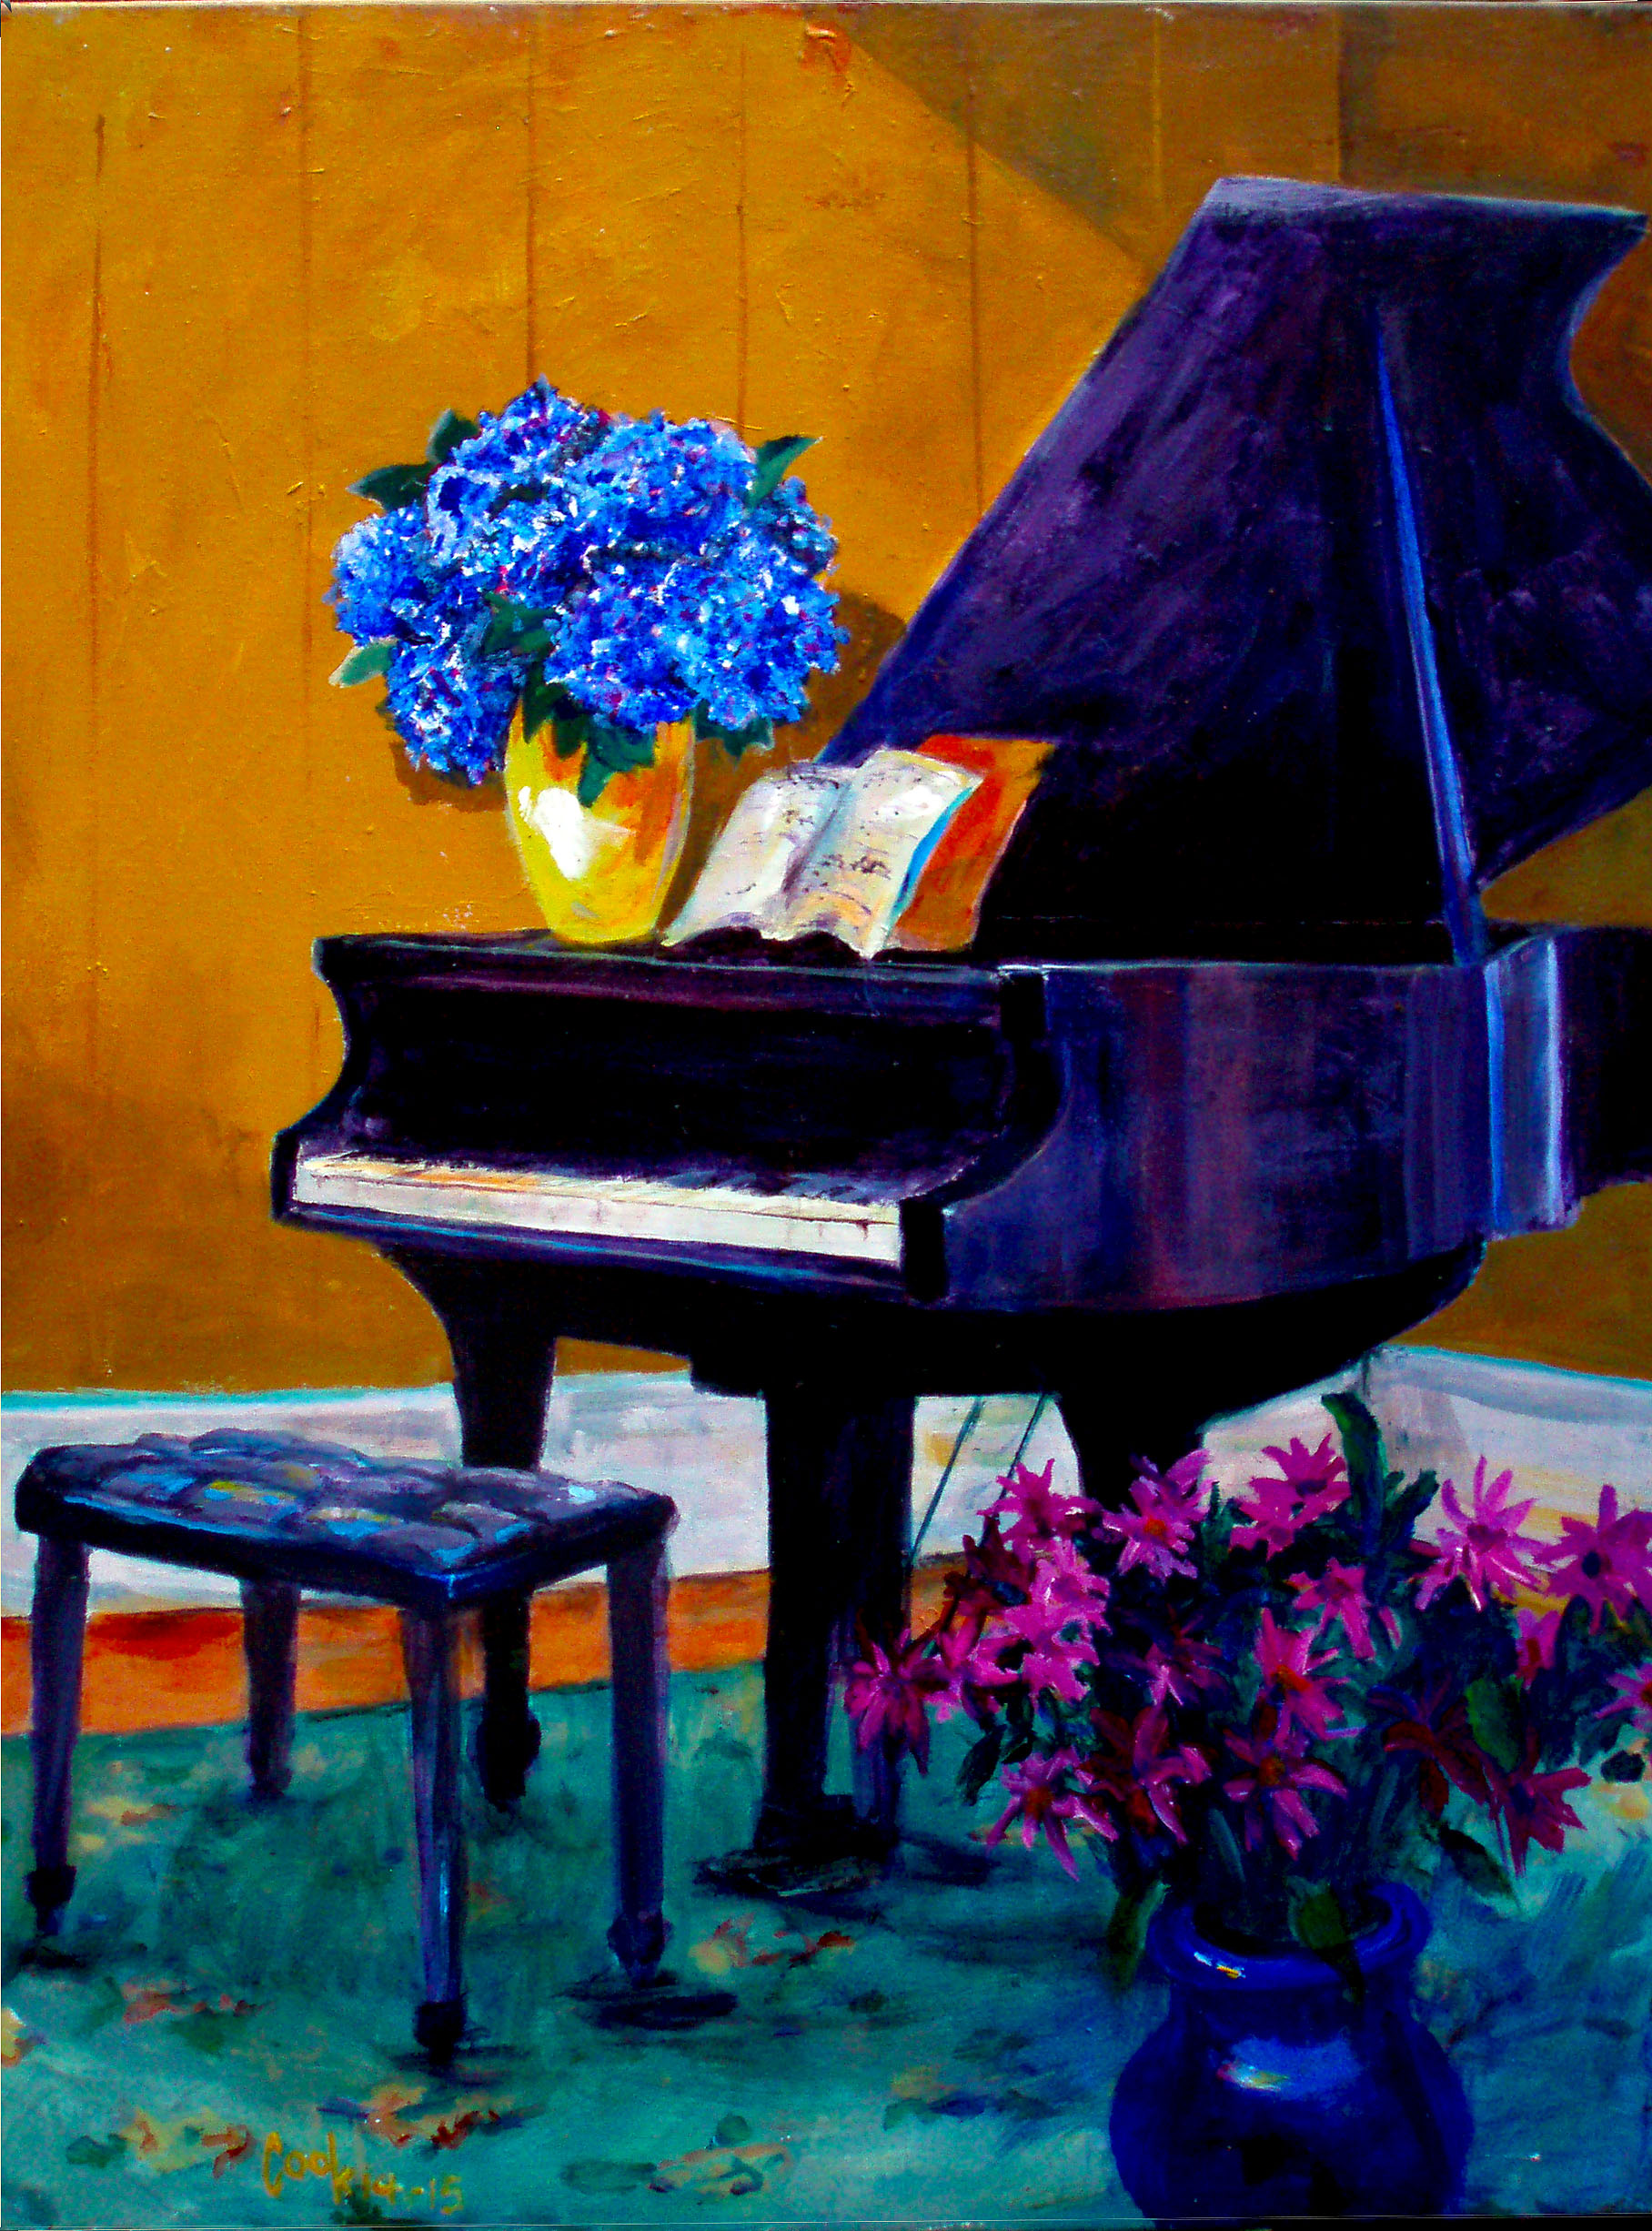 PIANO WITH FLOWERS, $1,500.